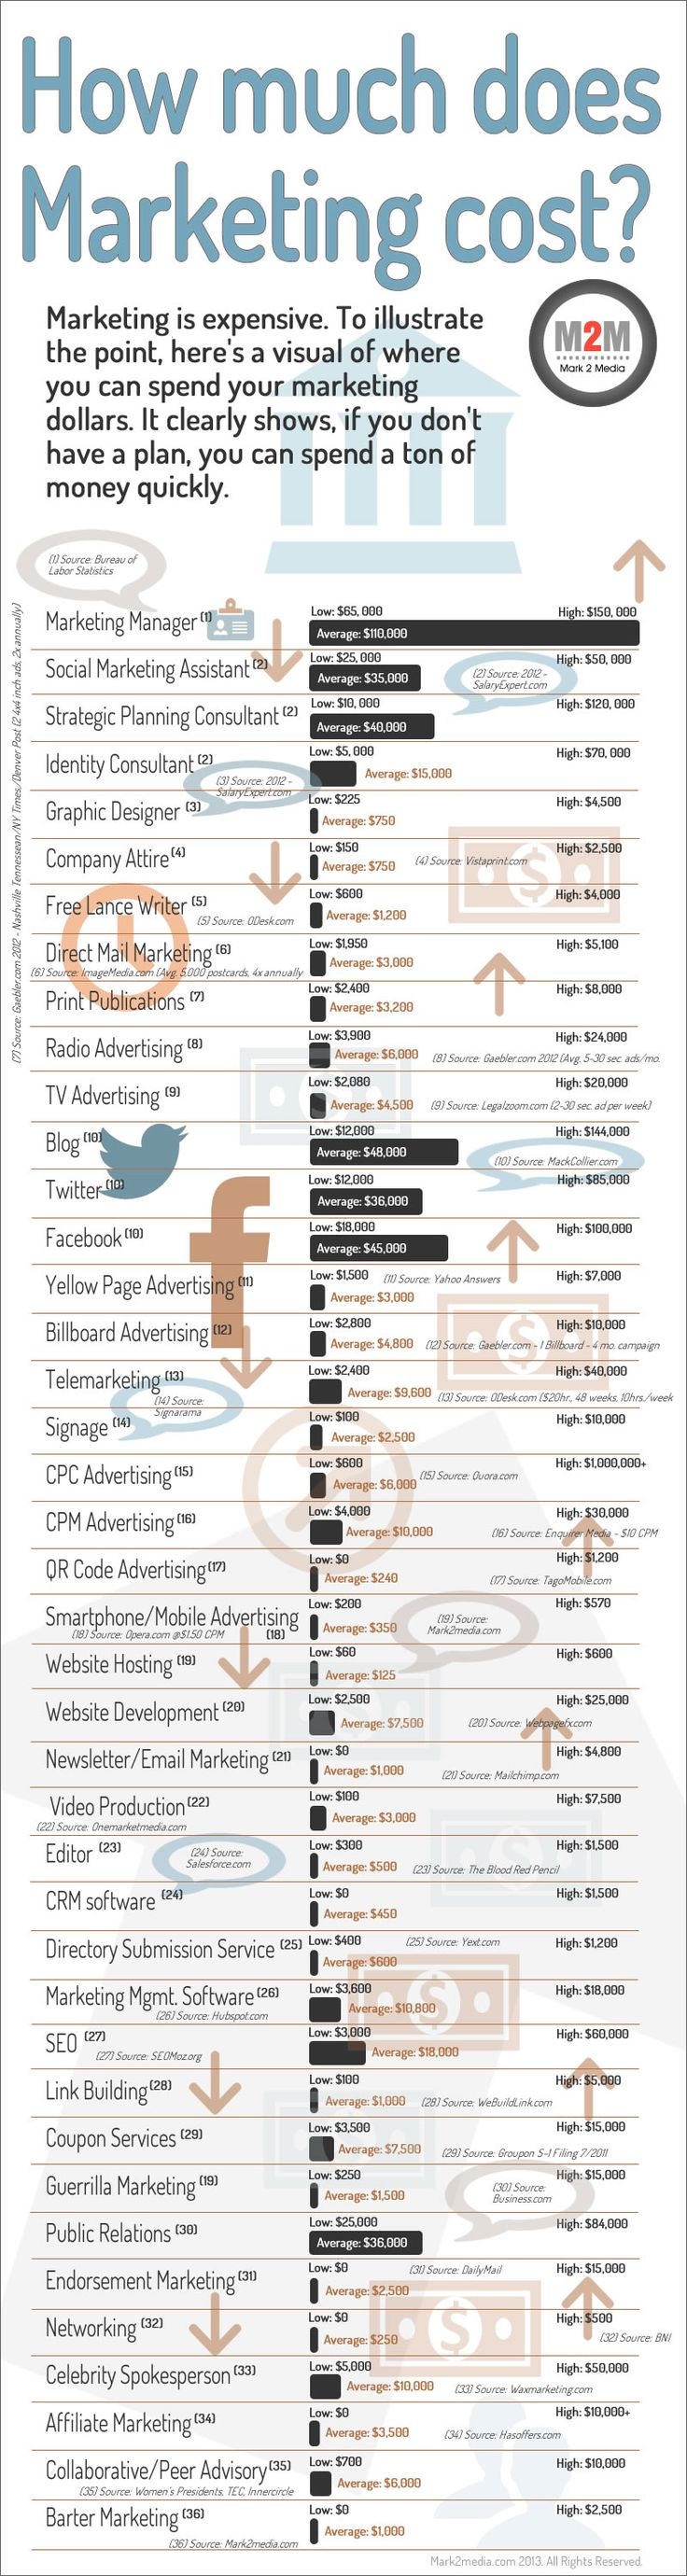 Of course, you also have to consider how much NOT marketing costs... #infographic #marketing #marketers #socialmedia #Twitter #Facebook #SEO #blog #blogging